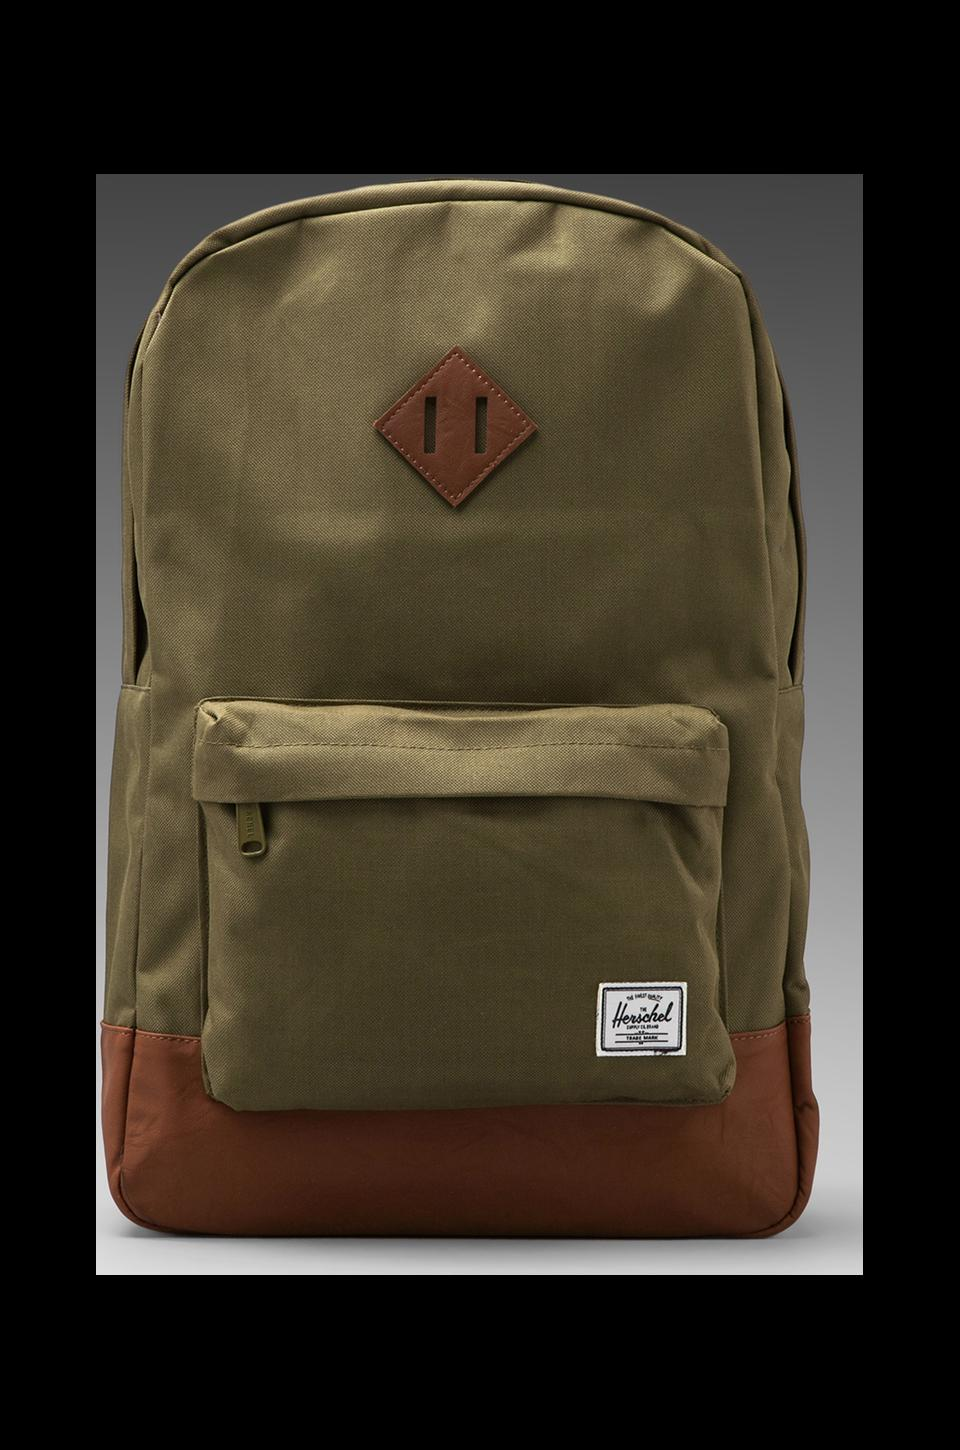 Herschel Supply Co. Sac à dos Heritage en Army